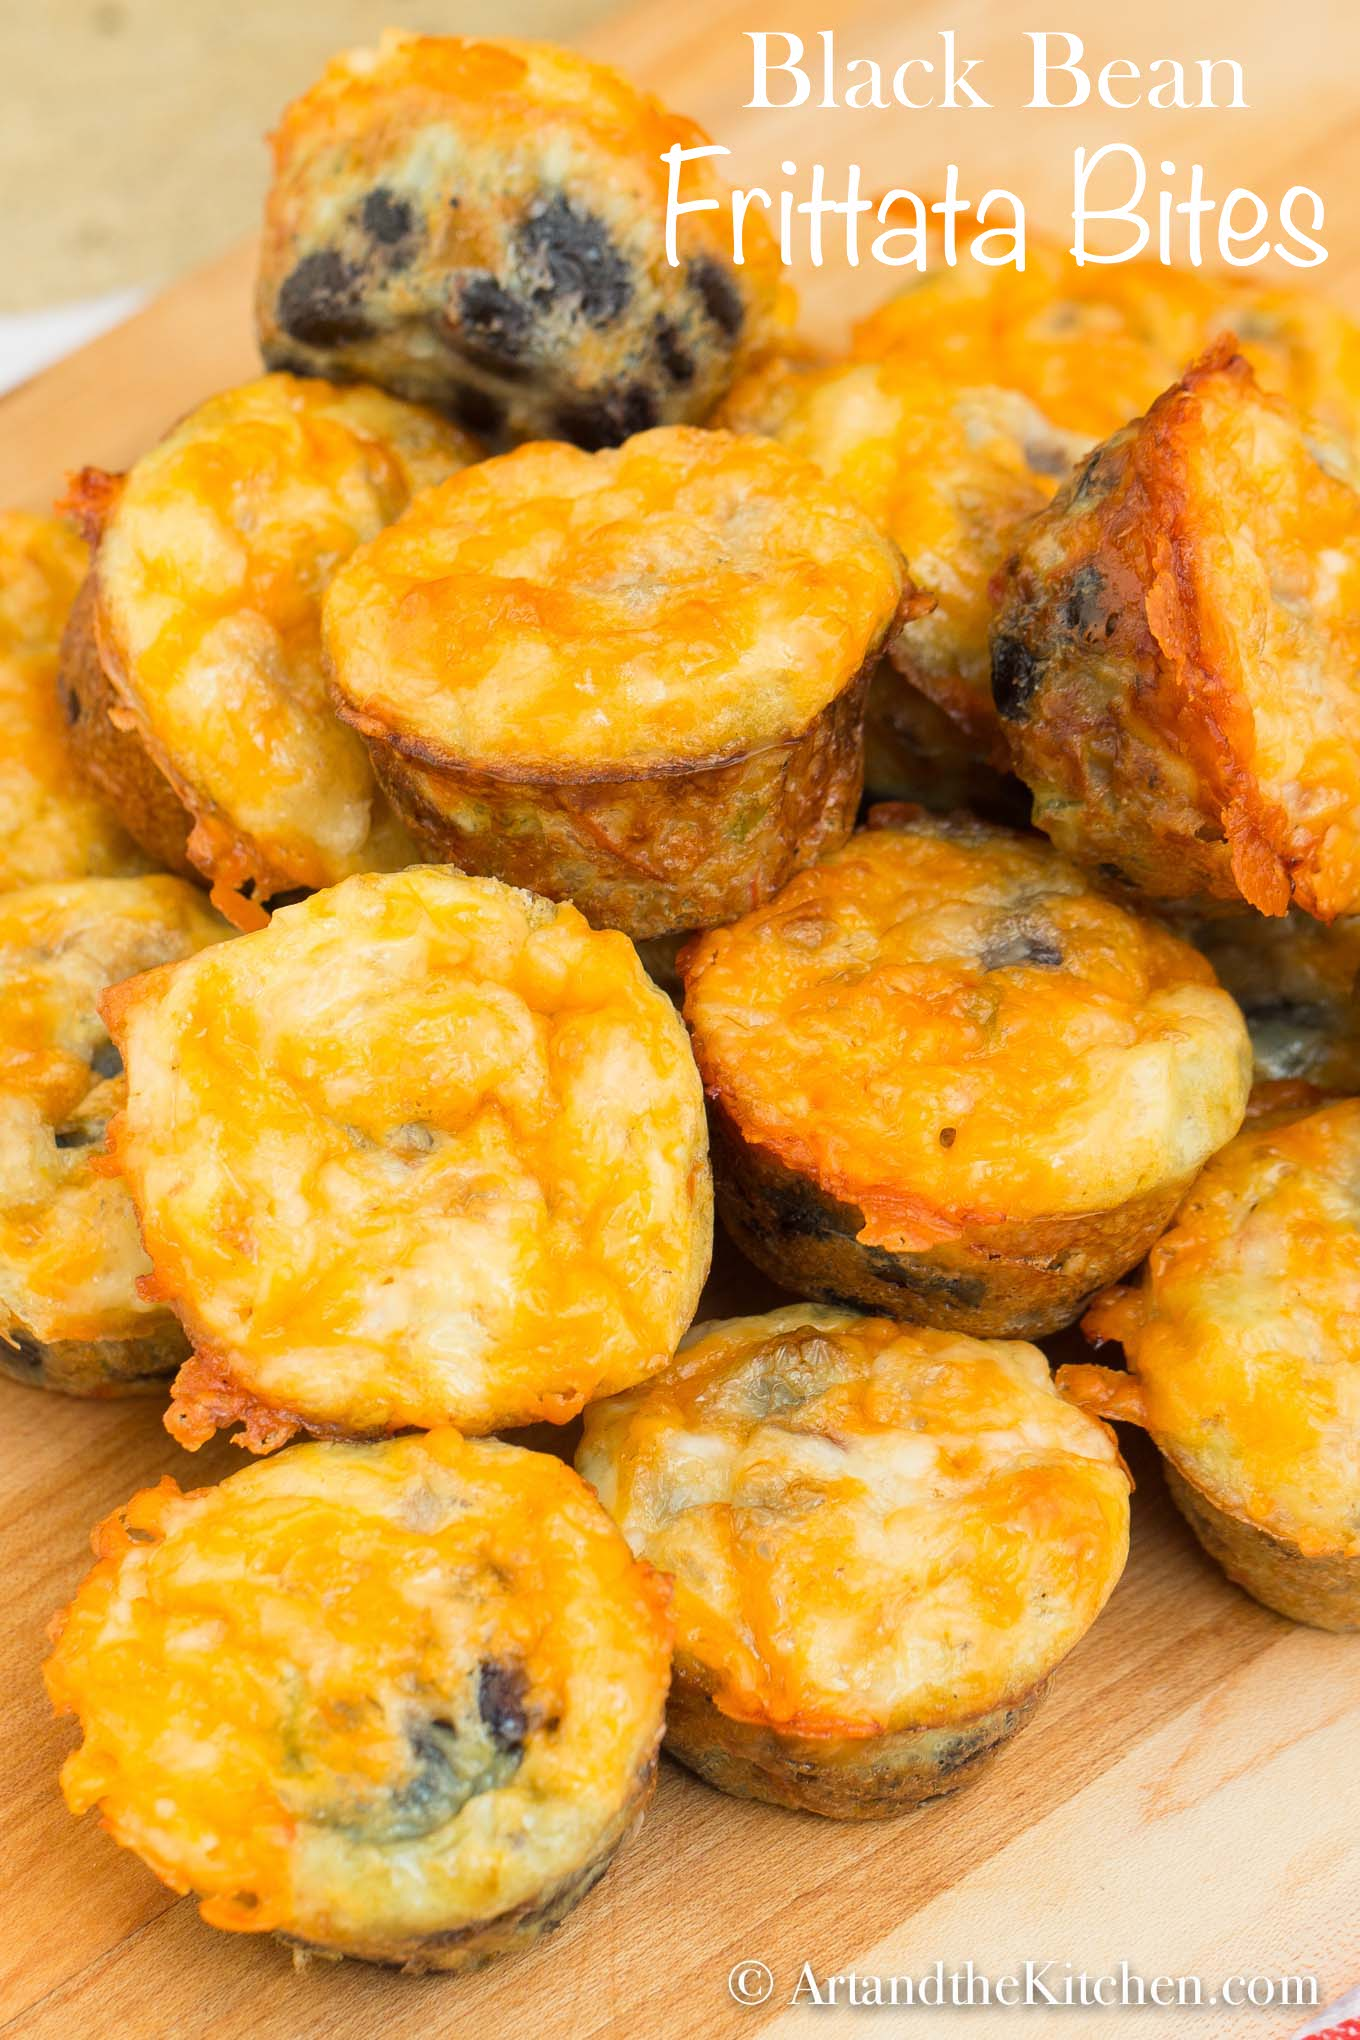 Black Bean Frittata Bites are easy to make, super healthy, and an excellent source of protein and fibre. They are terrific for breakfast or to pack in the school lunch box #eggbites #blackbeans via @artandthekitch